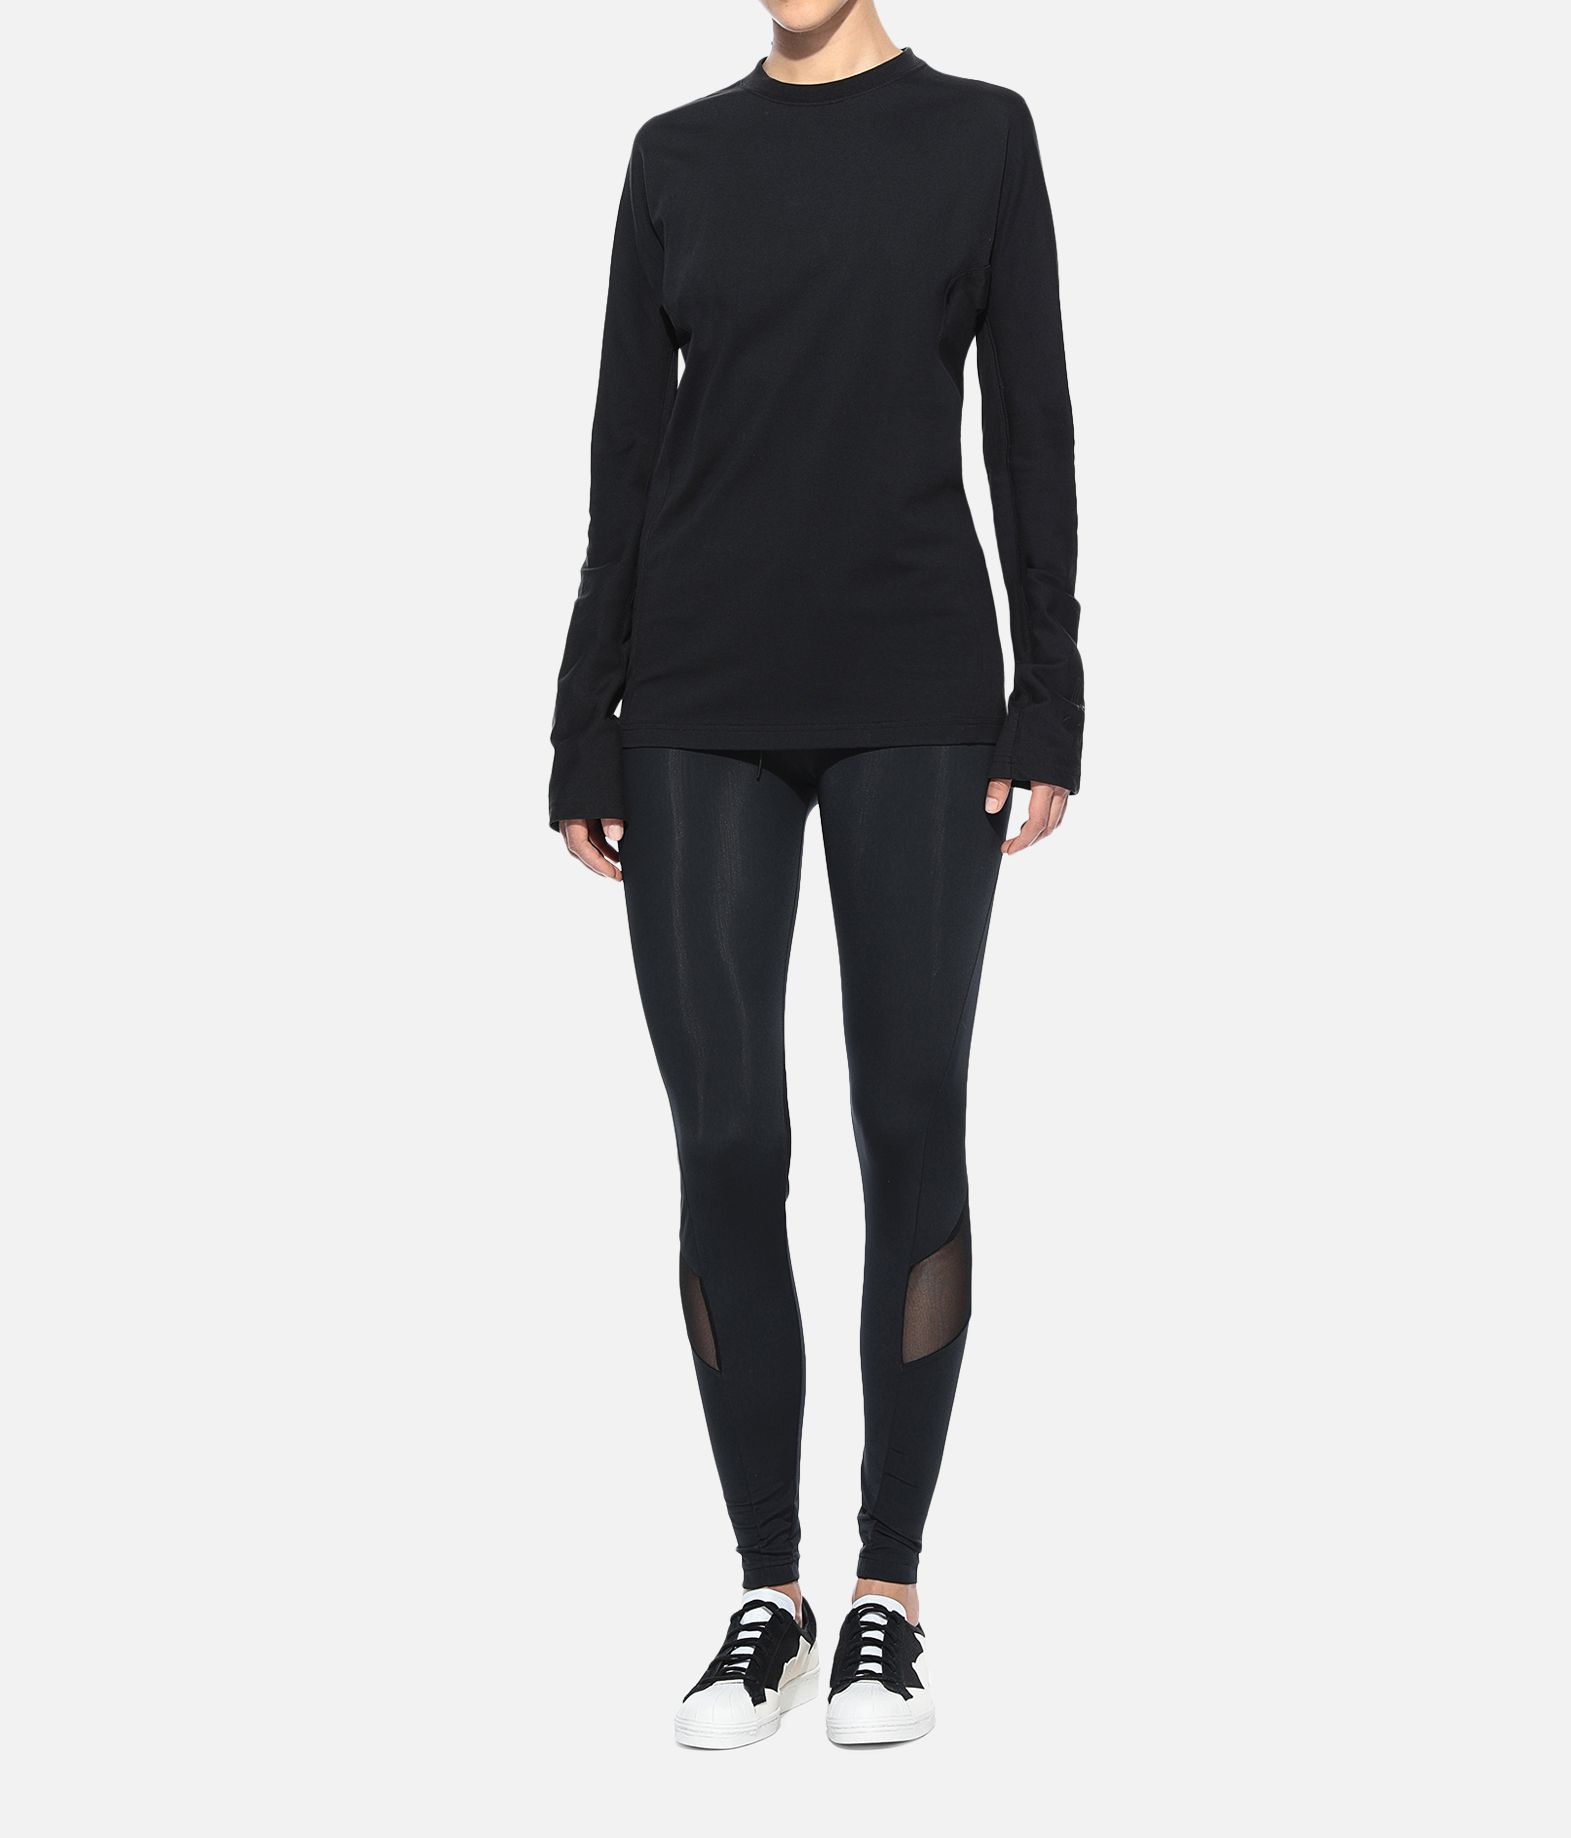 Y-3 Y-3 Classic Tee Long sleeve t-shirt Woman a